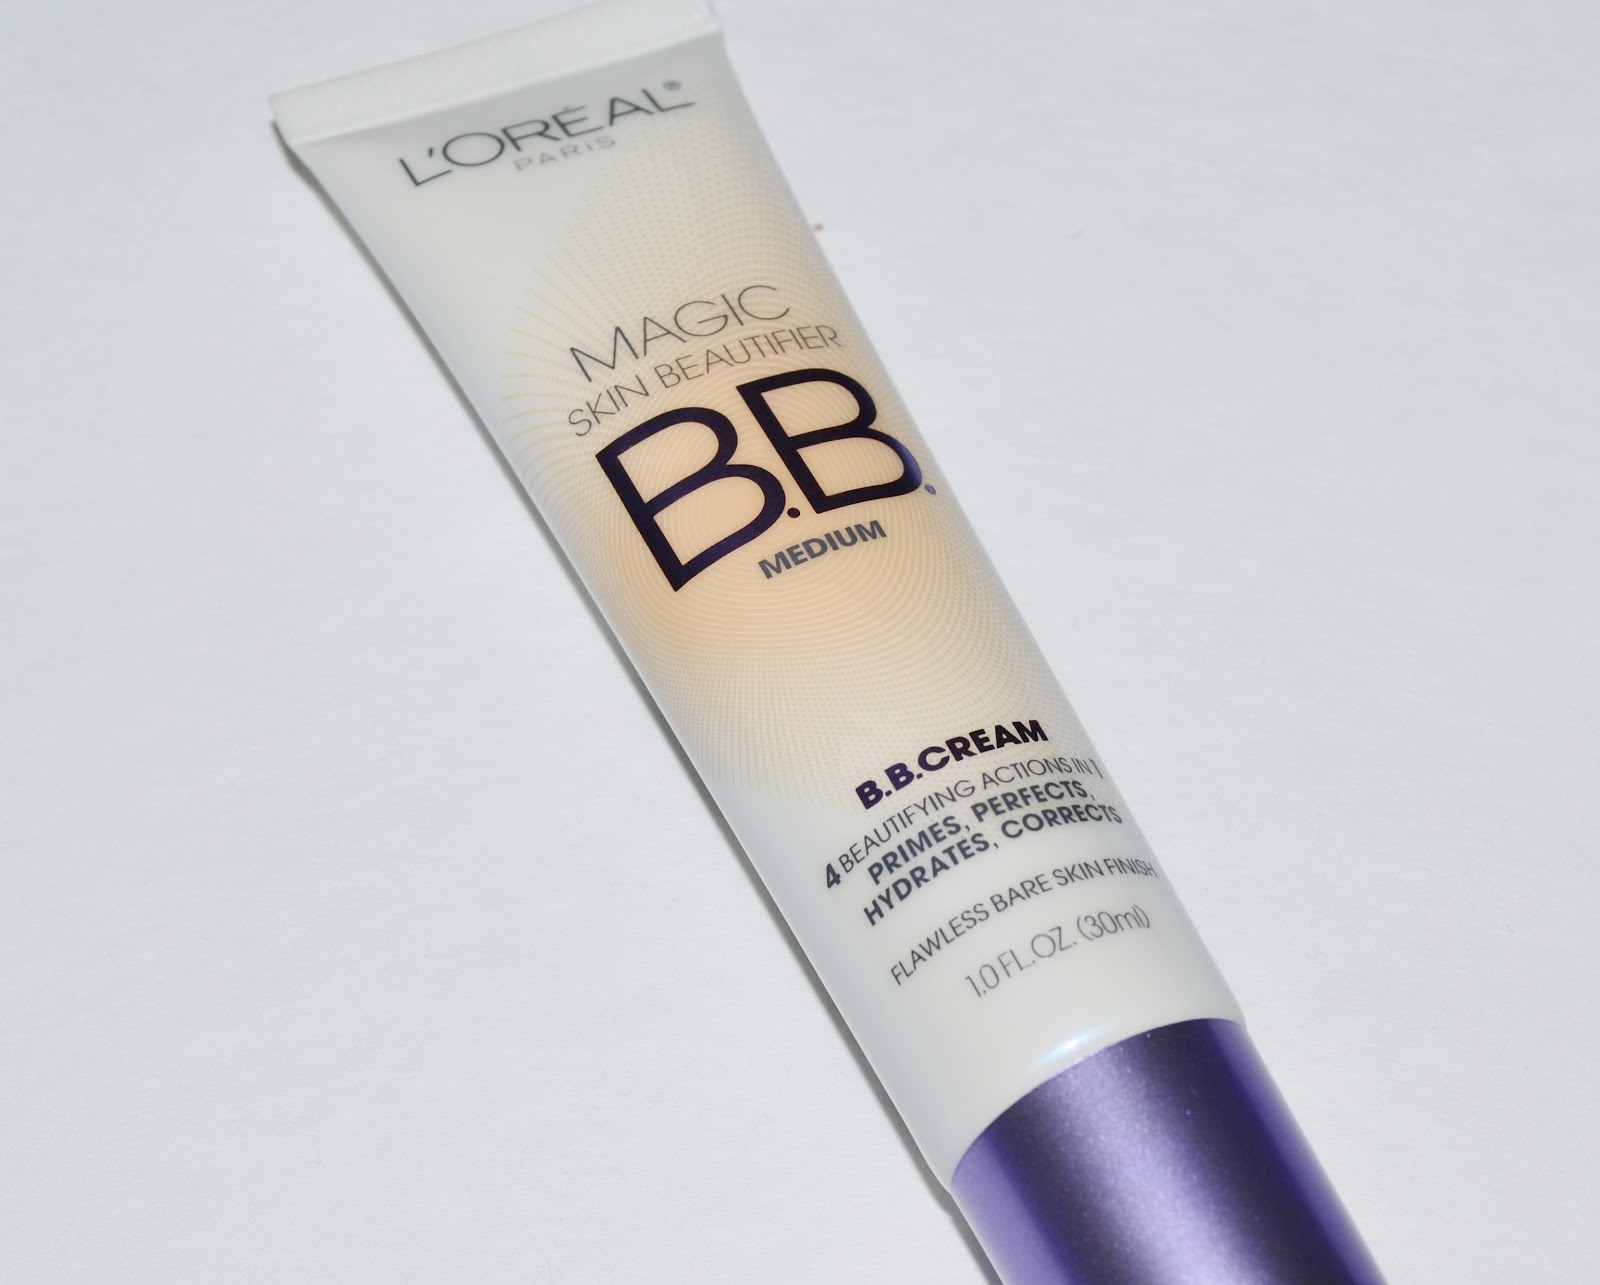 BB Cream Reviews - The Dermatology Review